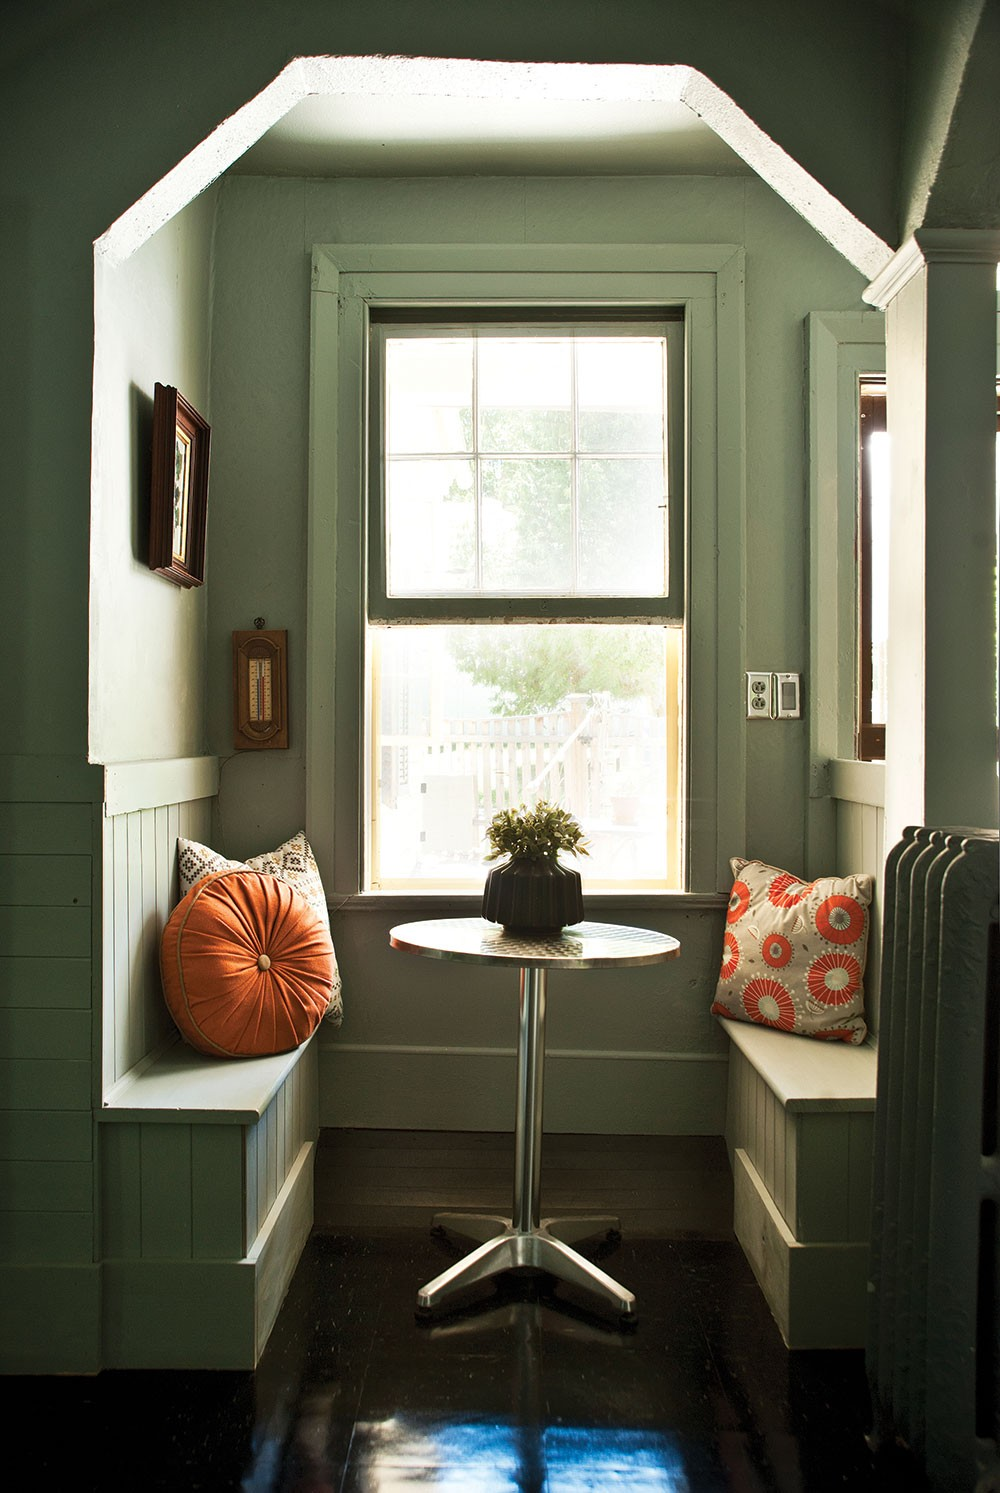 """The home's breakfast nook. """"I've gone through so many cans of paint in this house,"""" Sexton says. """"I painted one color, lived with it for a while, then painted it again. It's a creative process."""" - DEBORAH DEGRAFFENREID"""